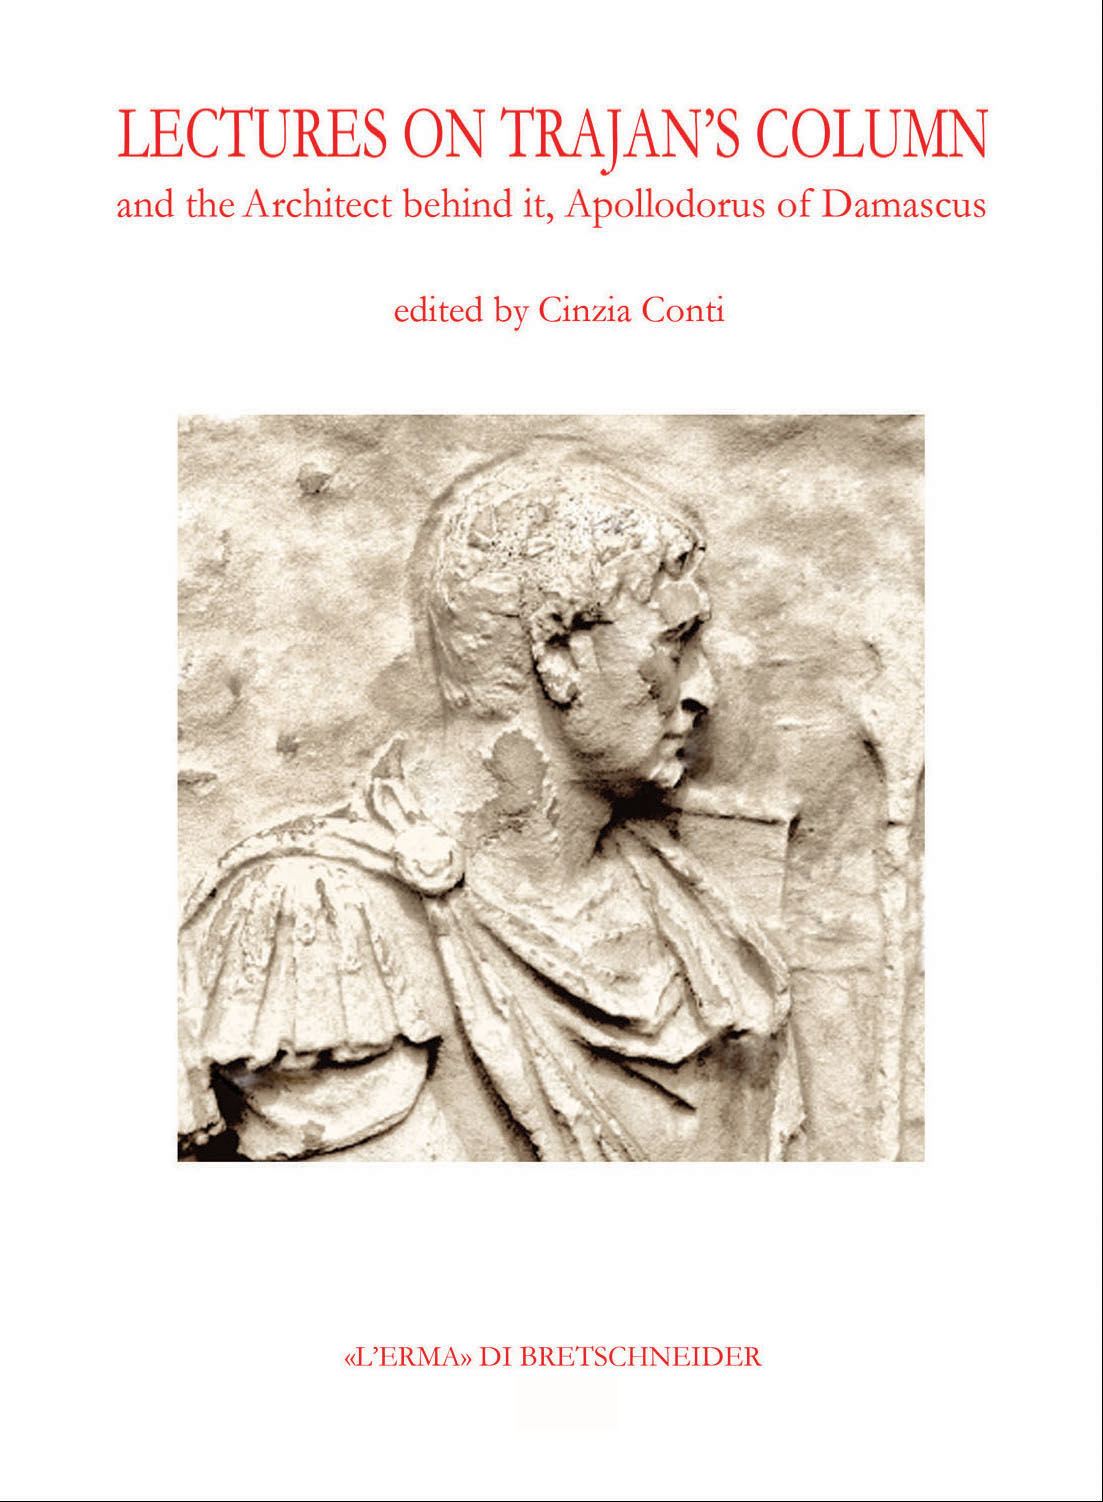 Lectures on Trajan's Column.